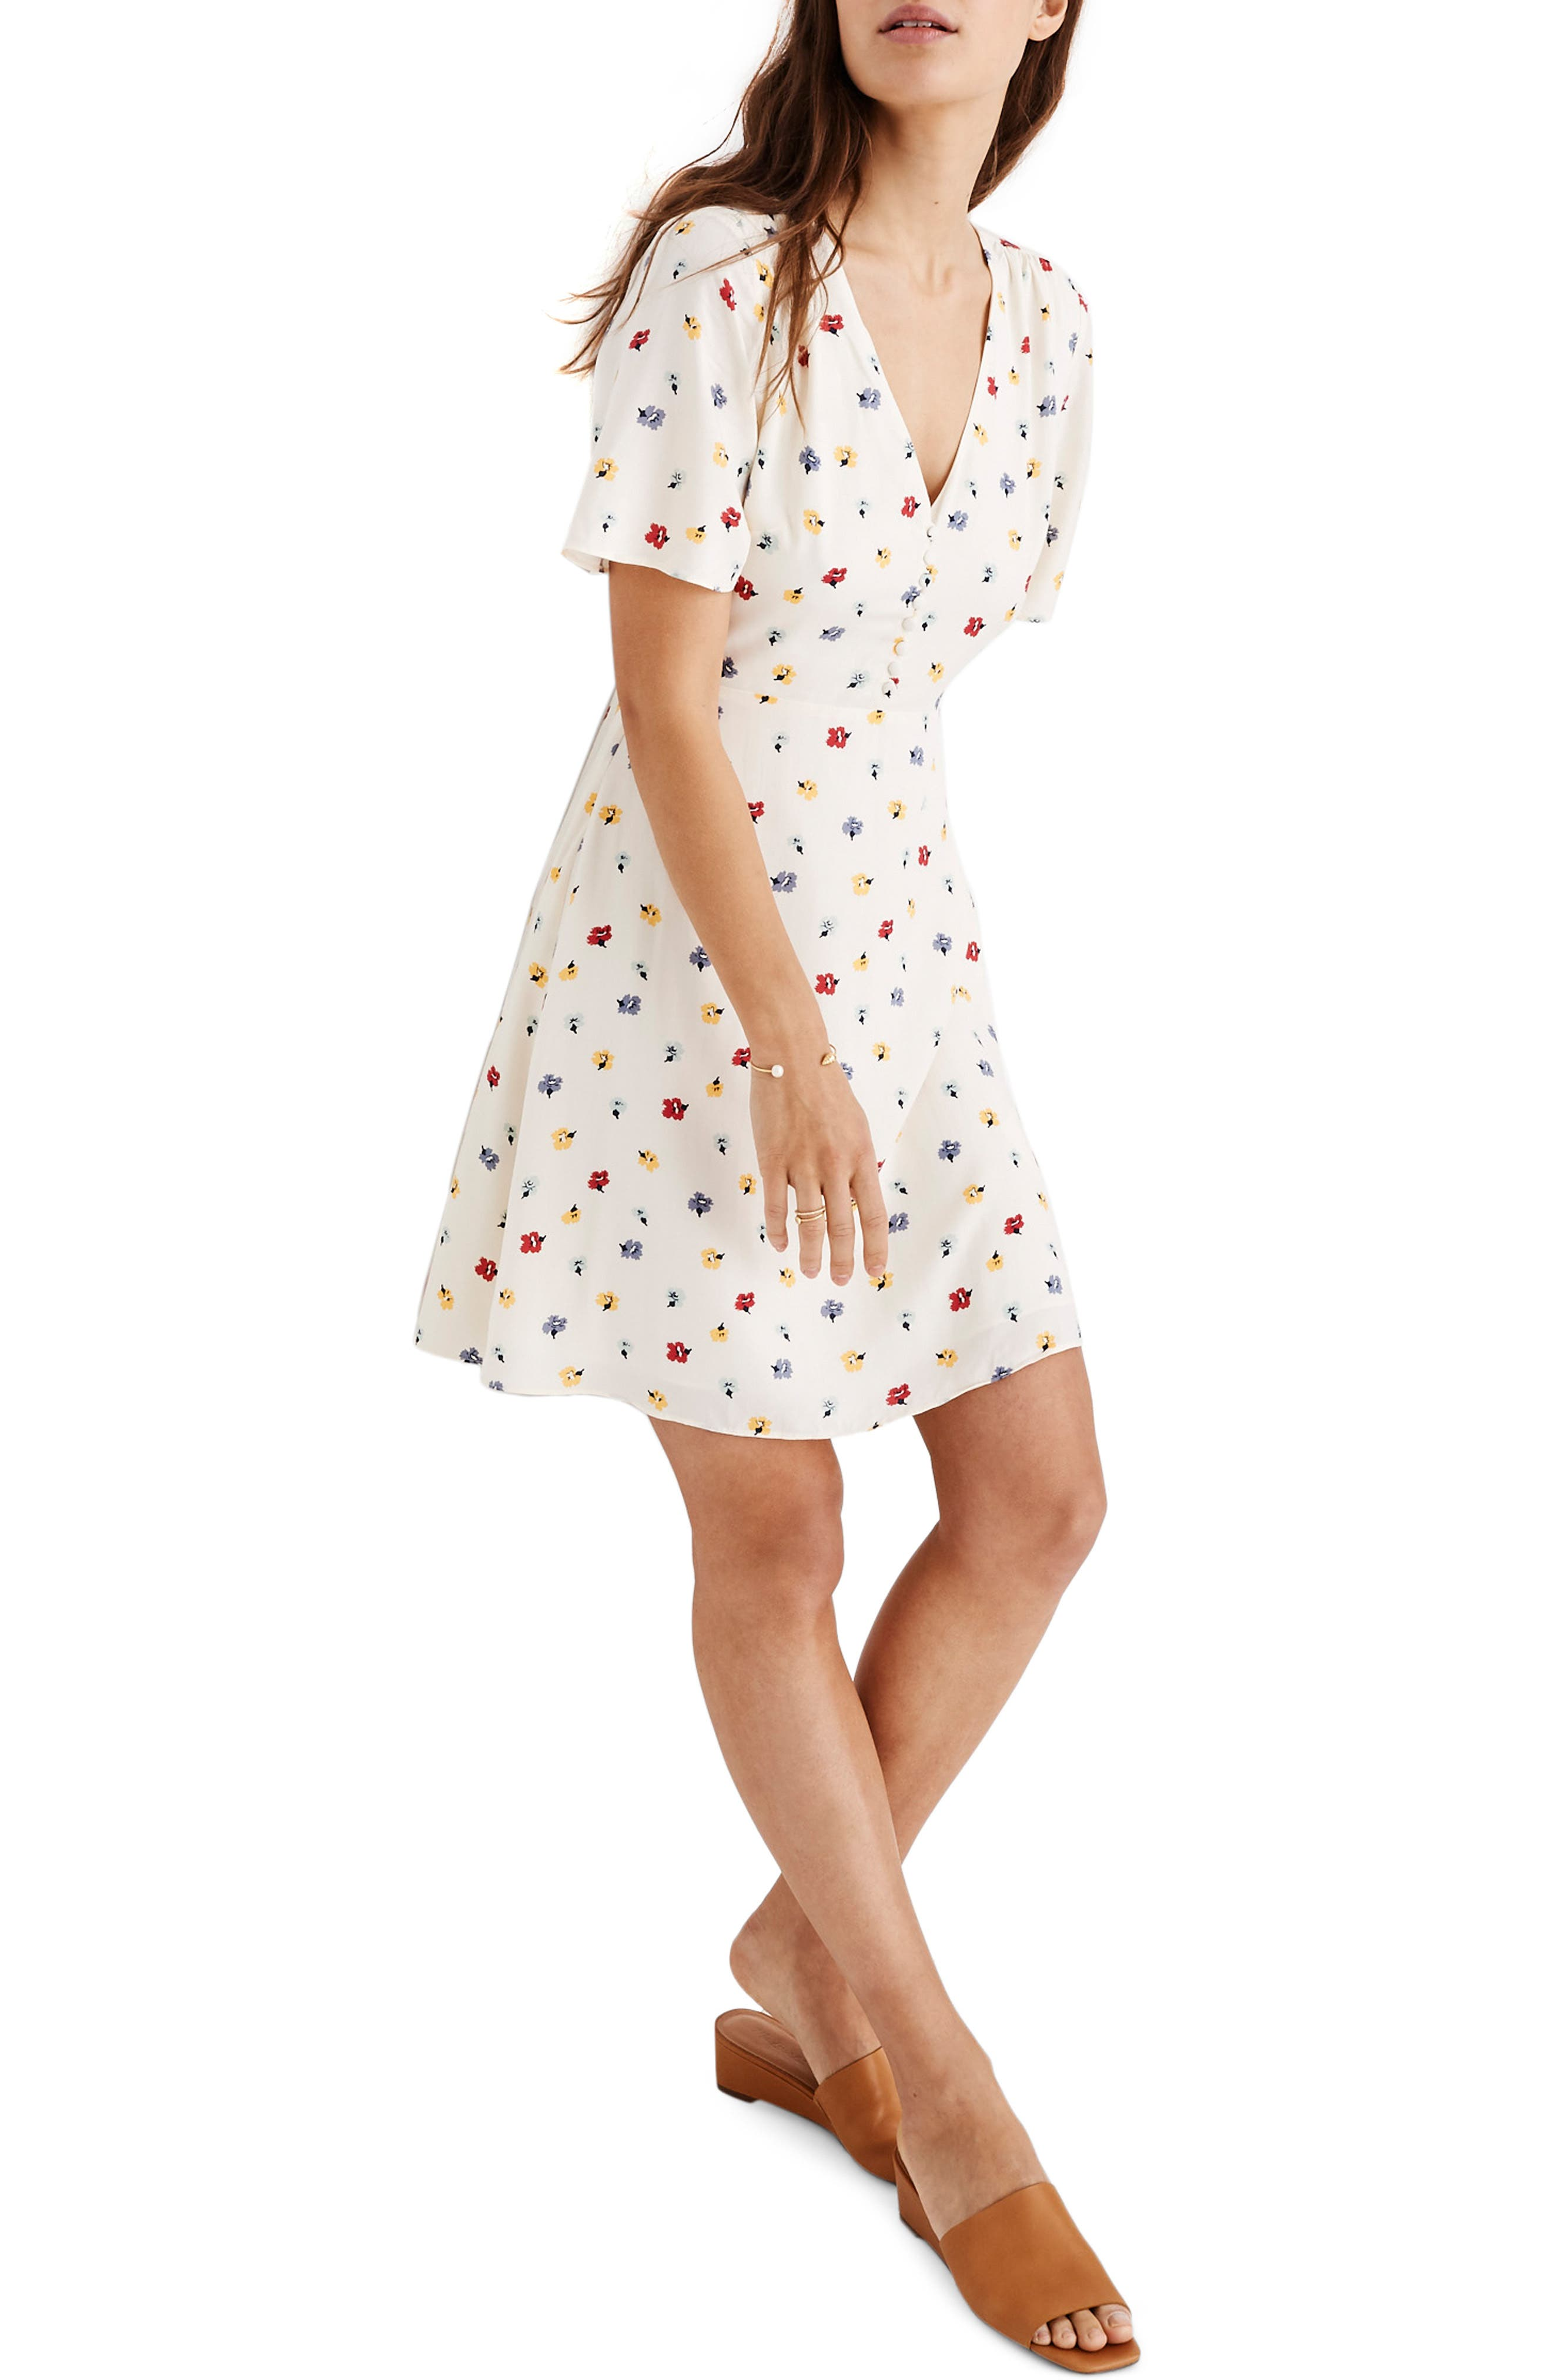 MADEWELL, Orchard Confetti Floral Flutter Sleeve Dress, Main thumbnail 1, color, 900